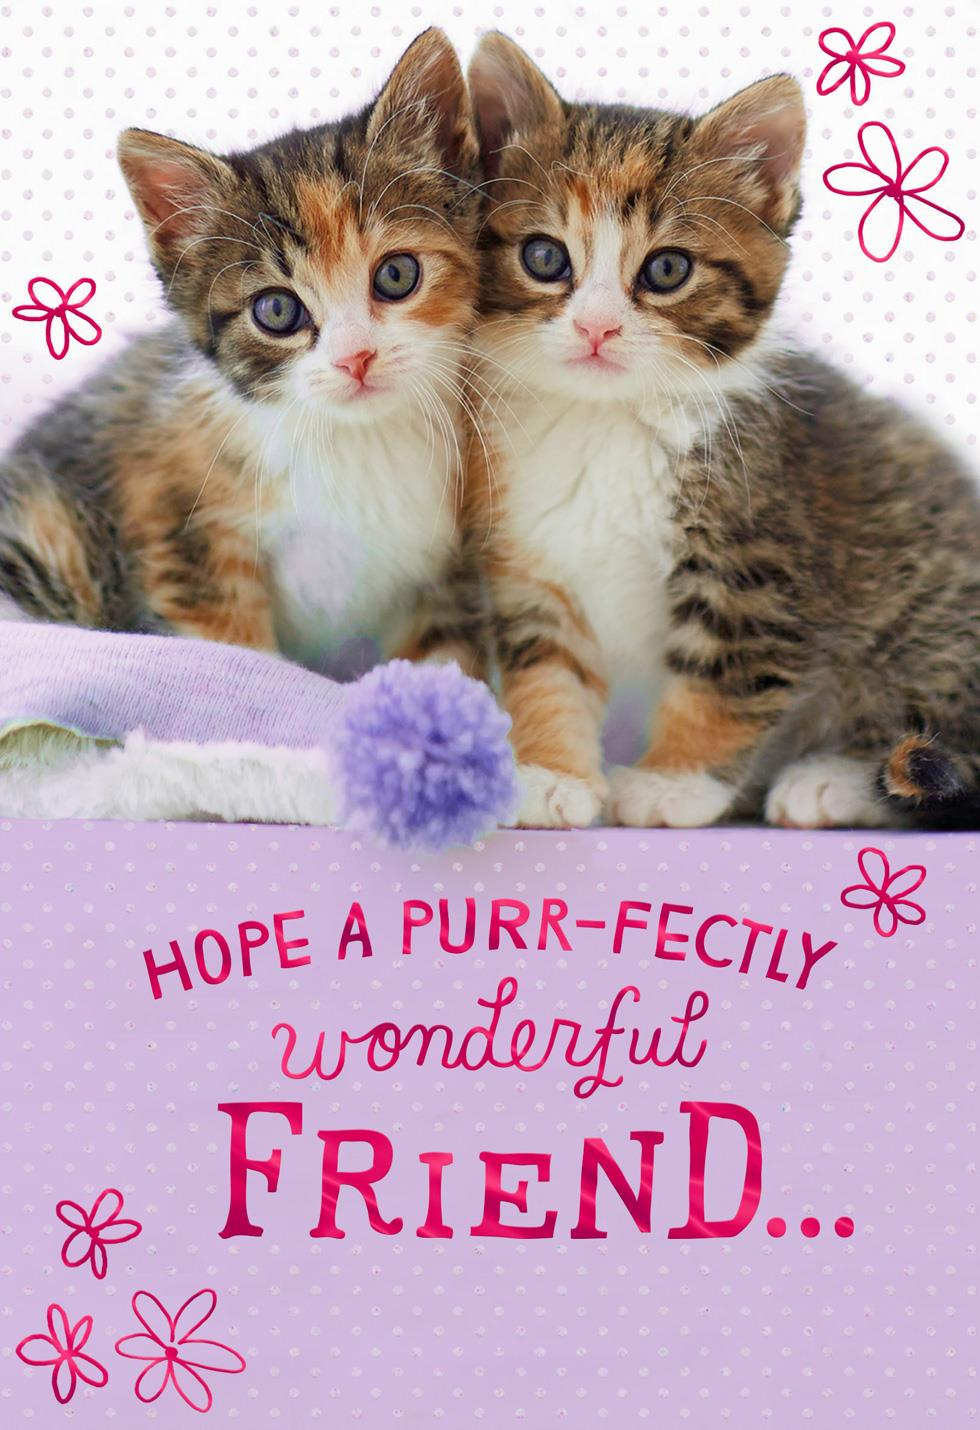 Purr Fectly Wonderful Kittens Birthday Card For Friend